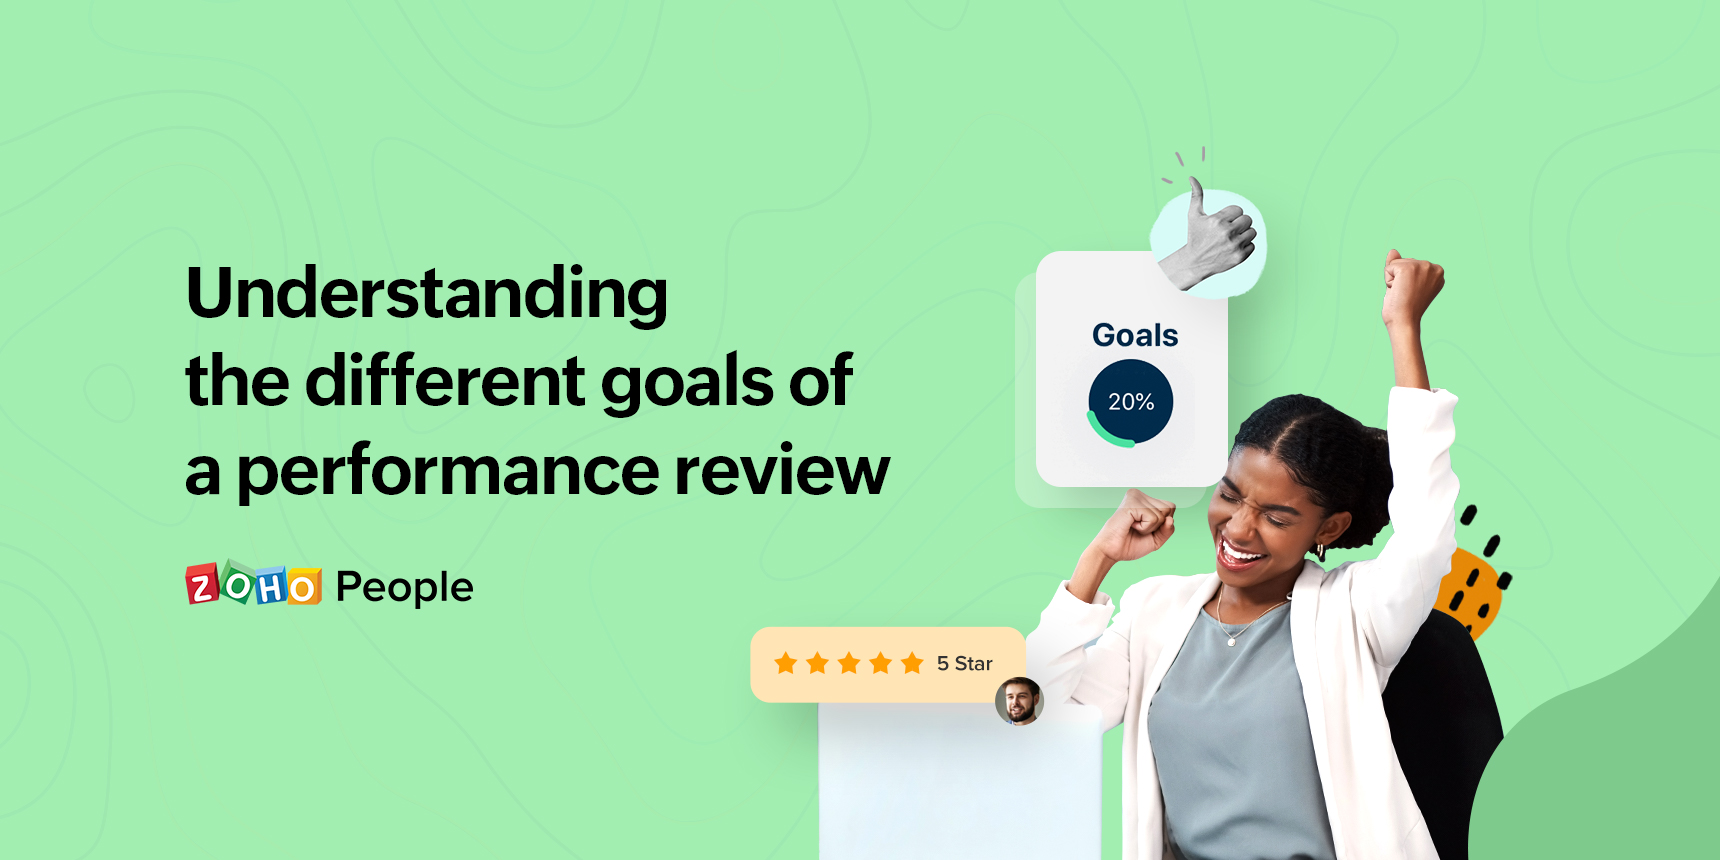 Understanding the goals of a performance review